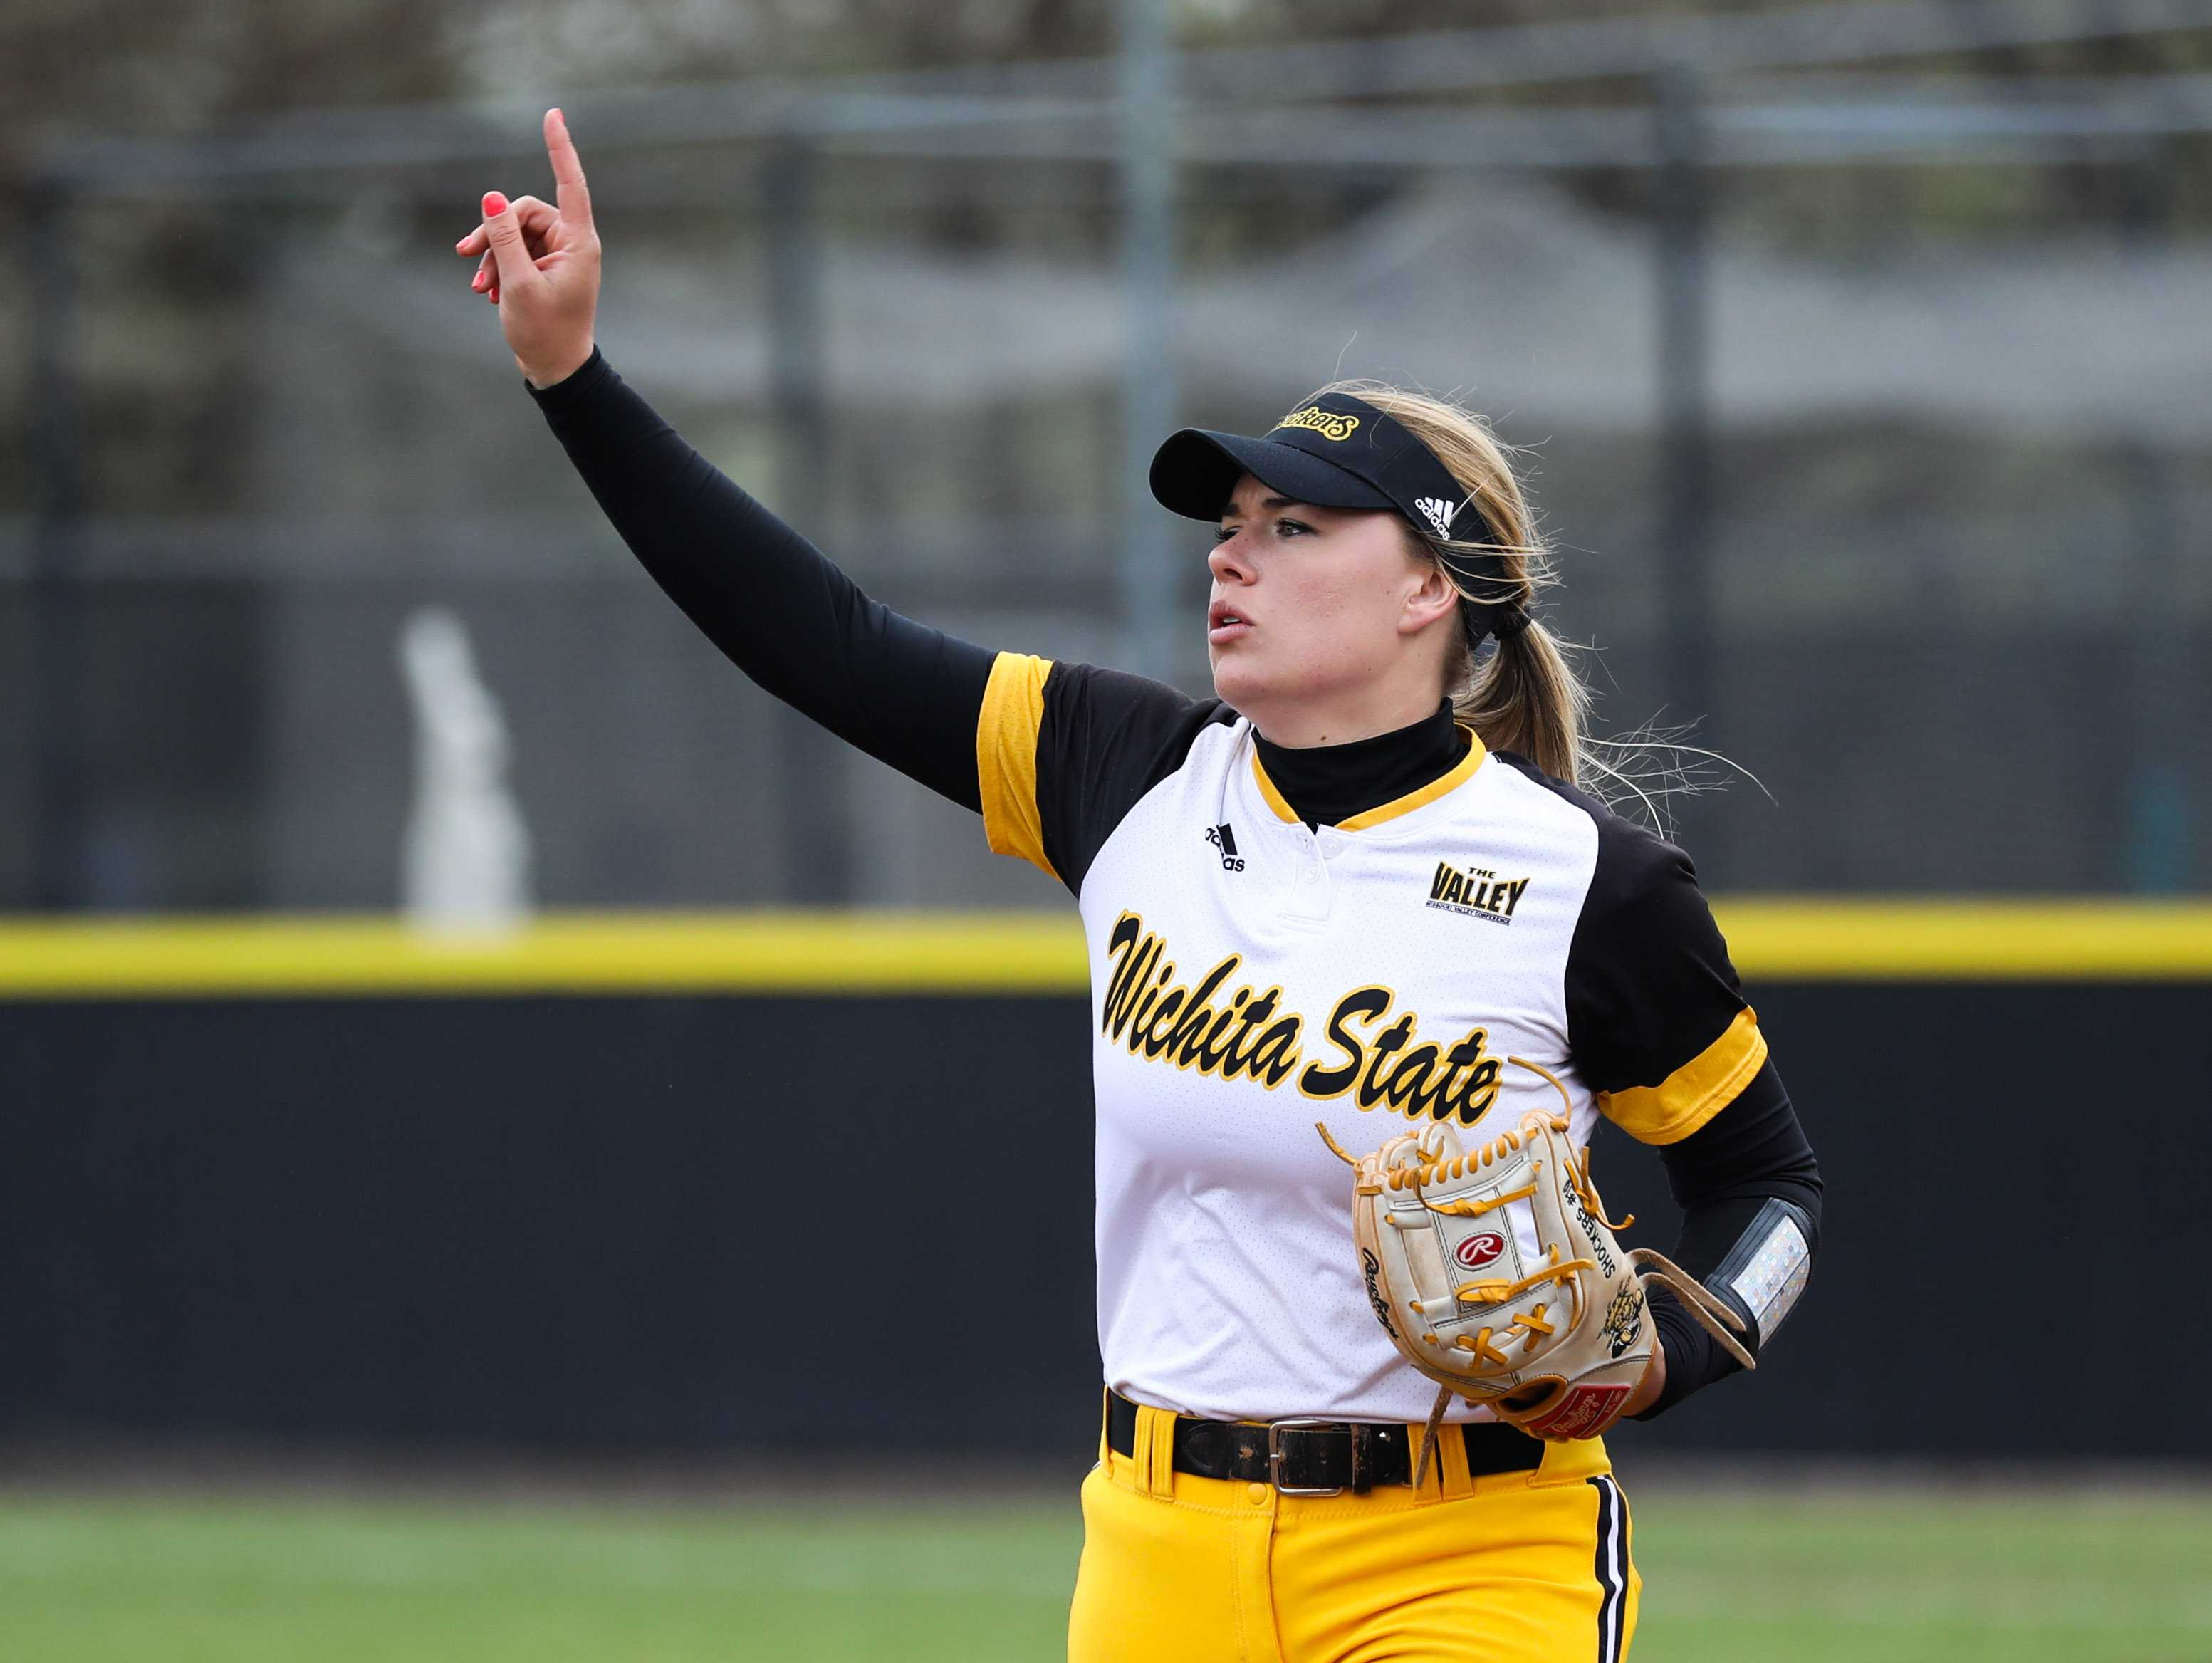 Wichita State junior Mackenzie Wright (10) gestures to the team during their Saturday afternoon matchup with Illinois State. (Mar. 25, 2017)